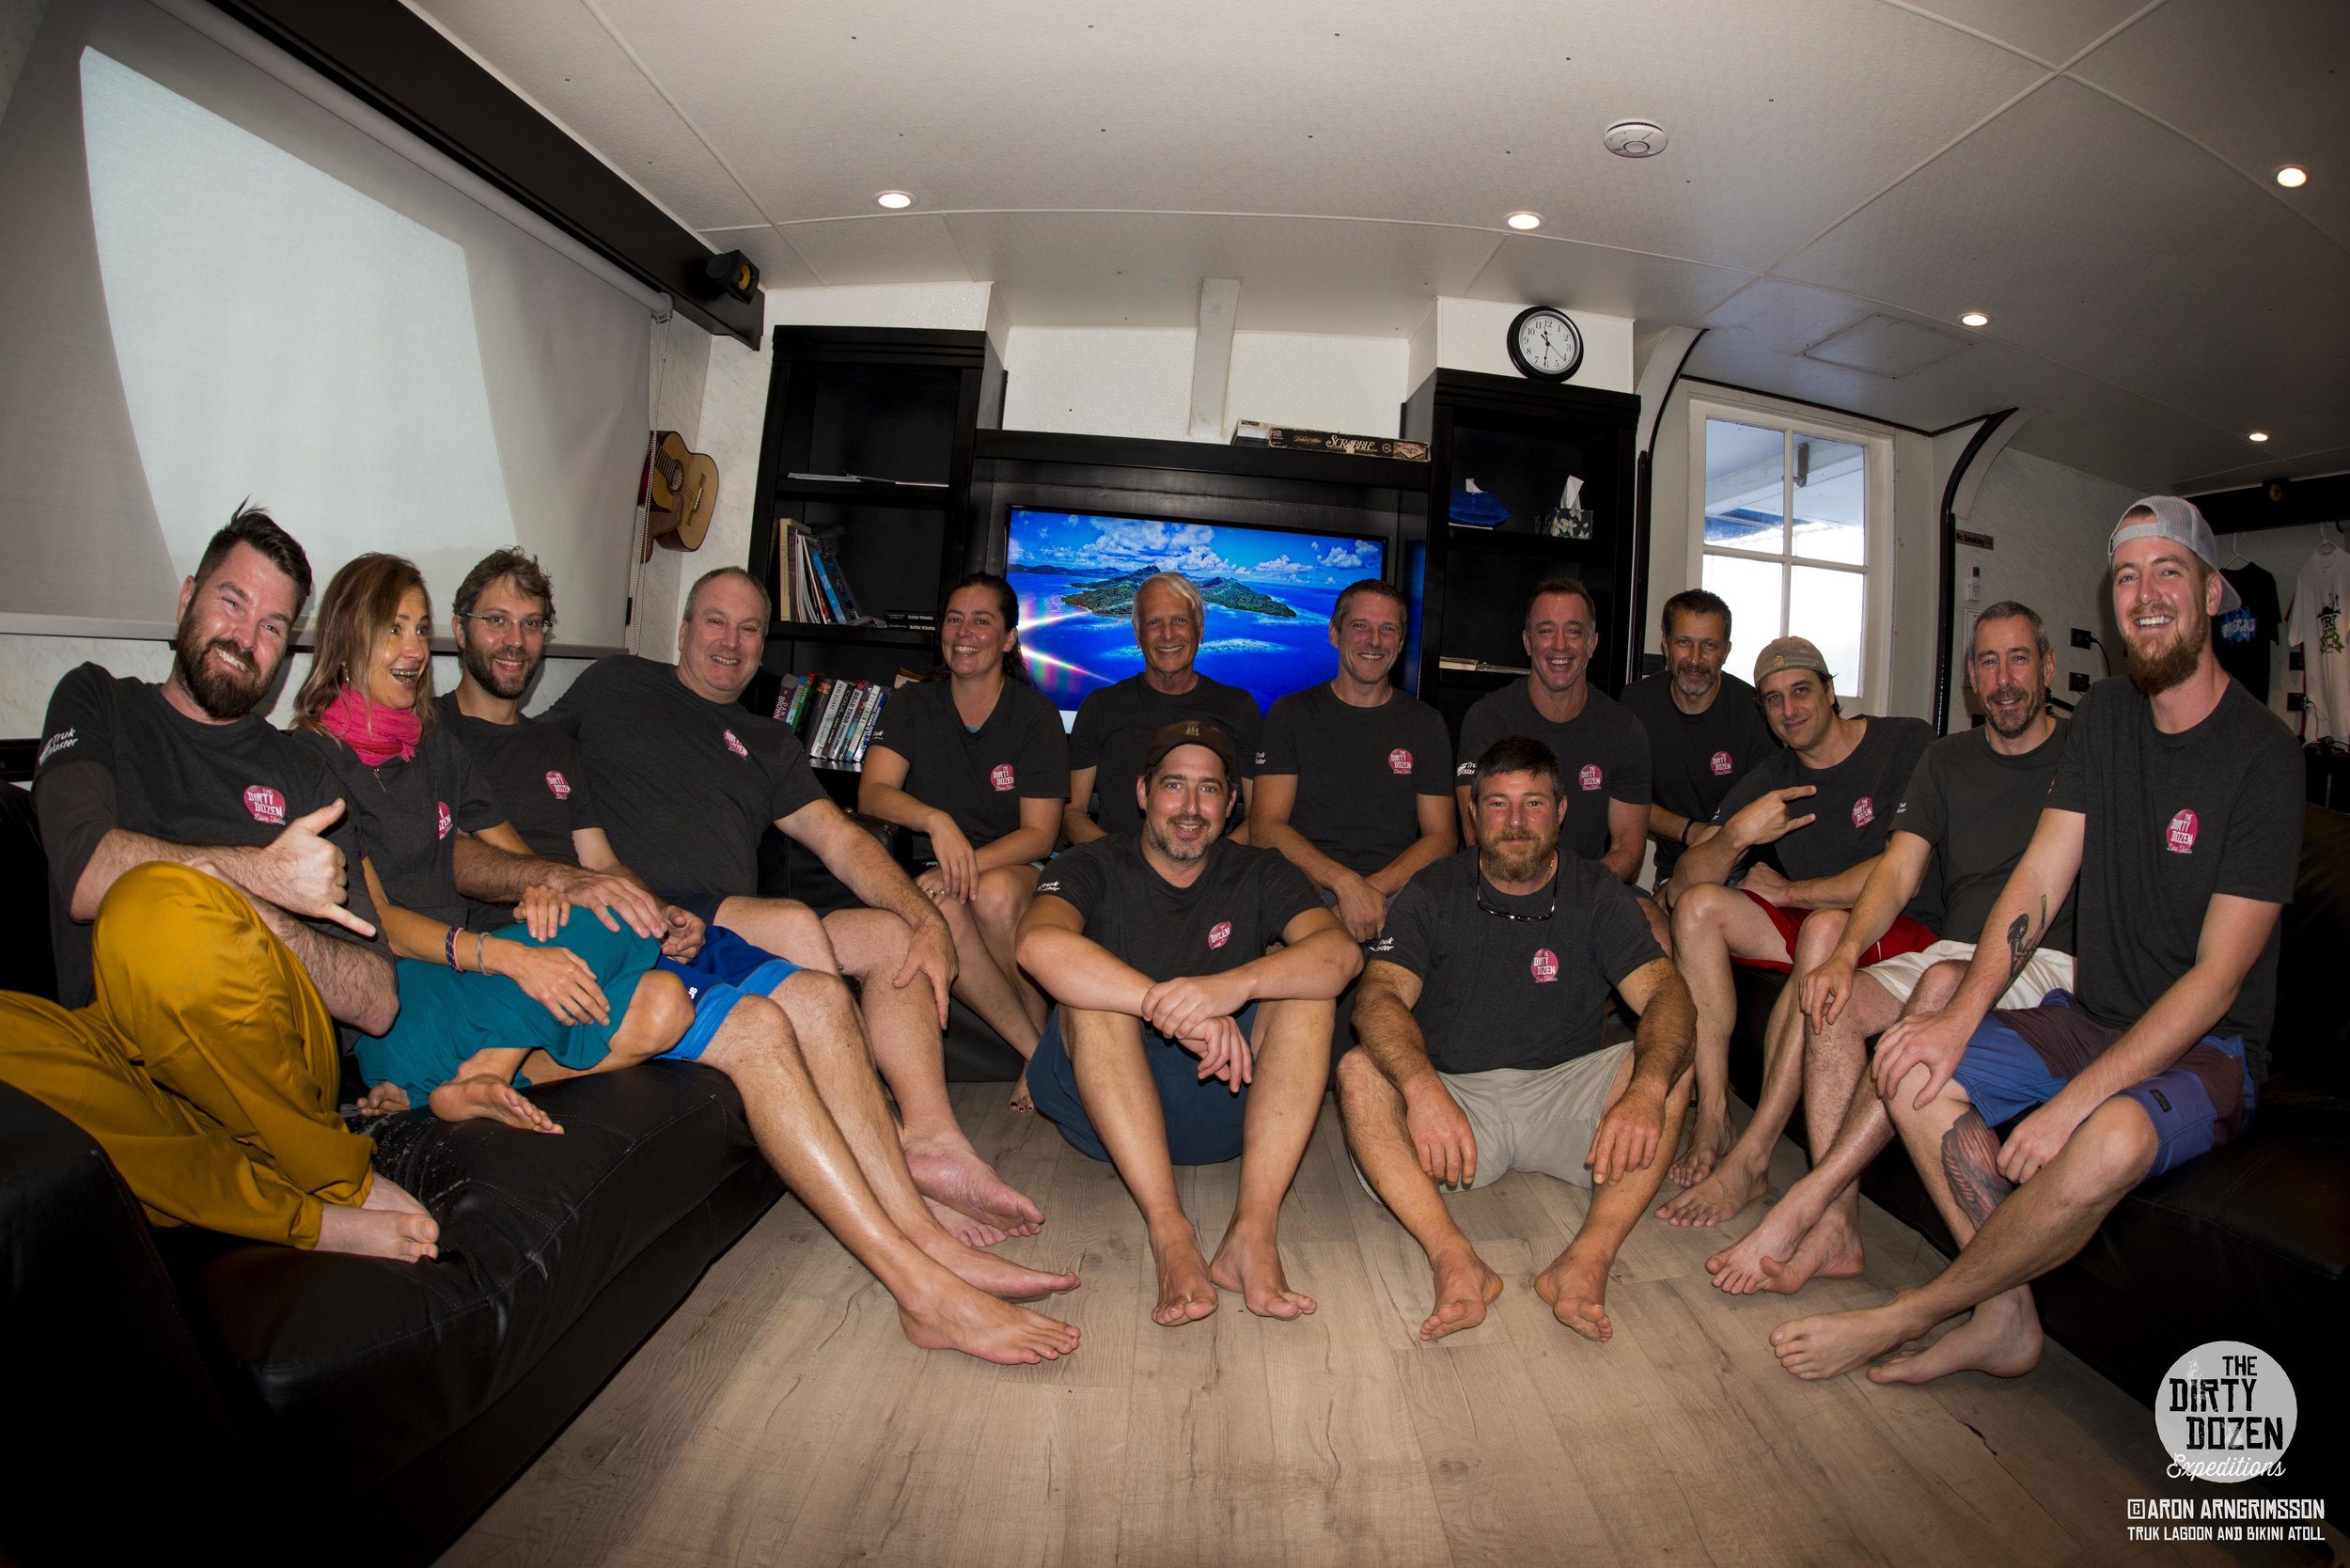 WRECK JUNKIES UNITE! - Dirty Dozen trips foster a close-knit family atmosphere between passionate wreck junkies and distinguished guest divers who conduct onboard workshops and fascinating evening lectures.